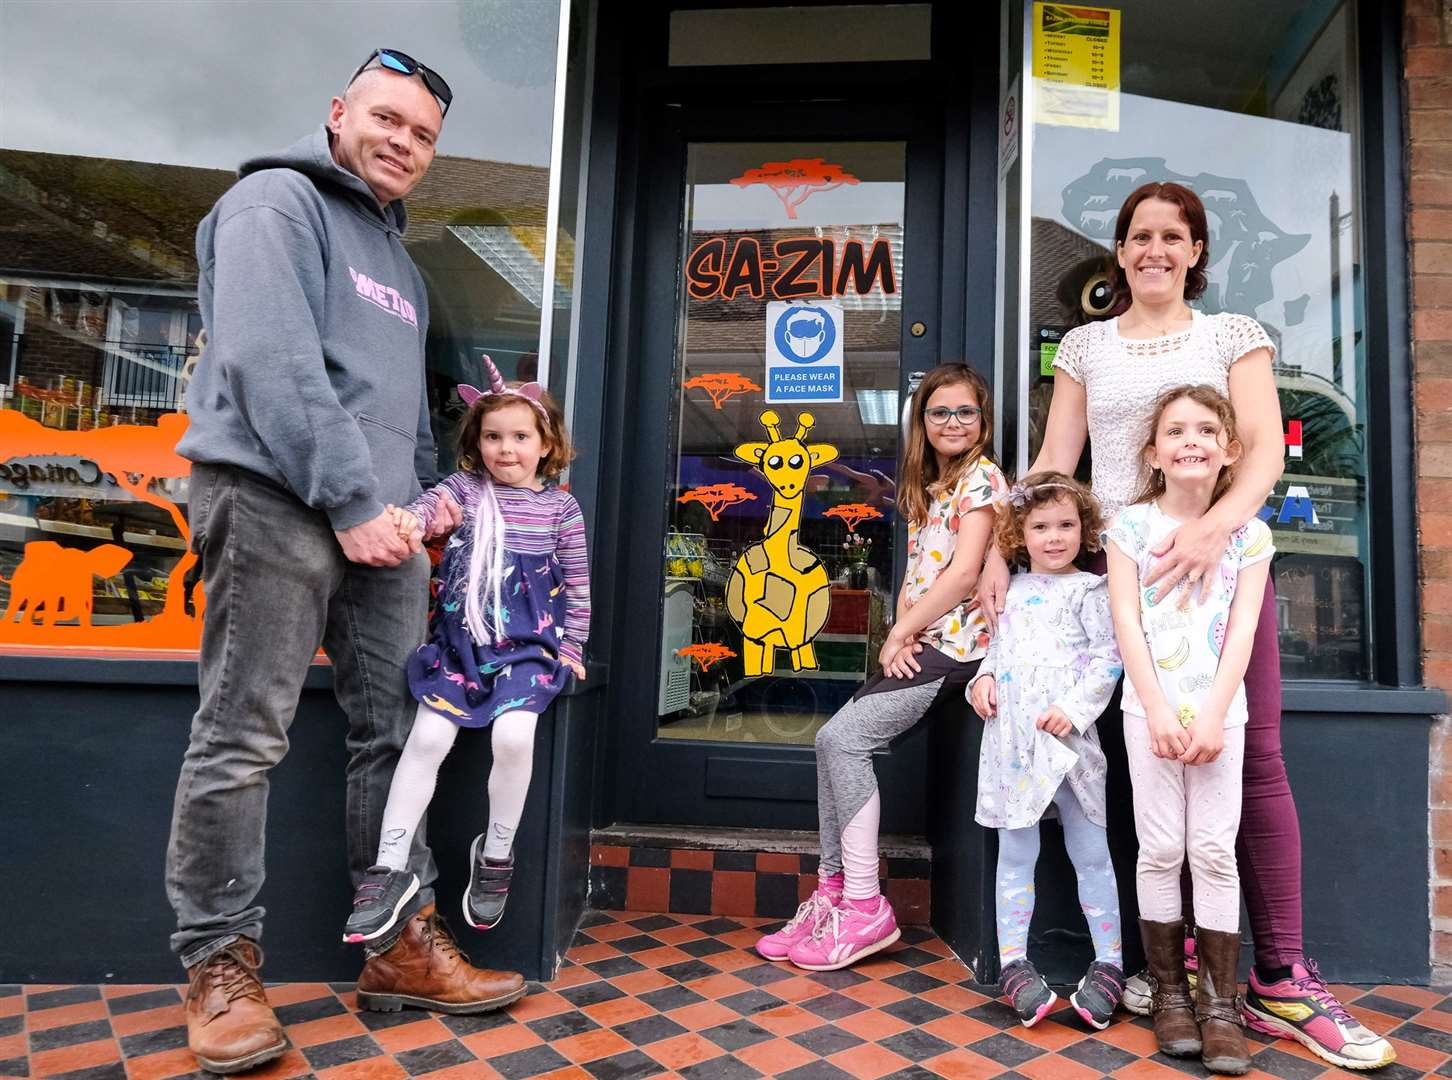 New owners of the SA-ZIM shop in Thatcham High Street ..Paul, Willow age 4, Lyla age 10, Scarlett age 4, Cassie age 6 and Vicky Rock .Ref: 19-1221C.Picture by Phil Cannings.. (47077703)